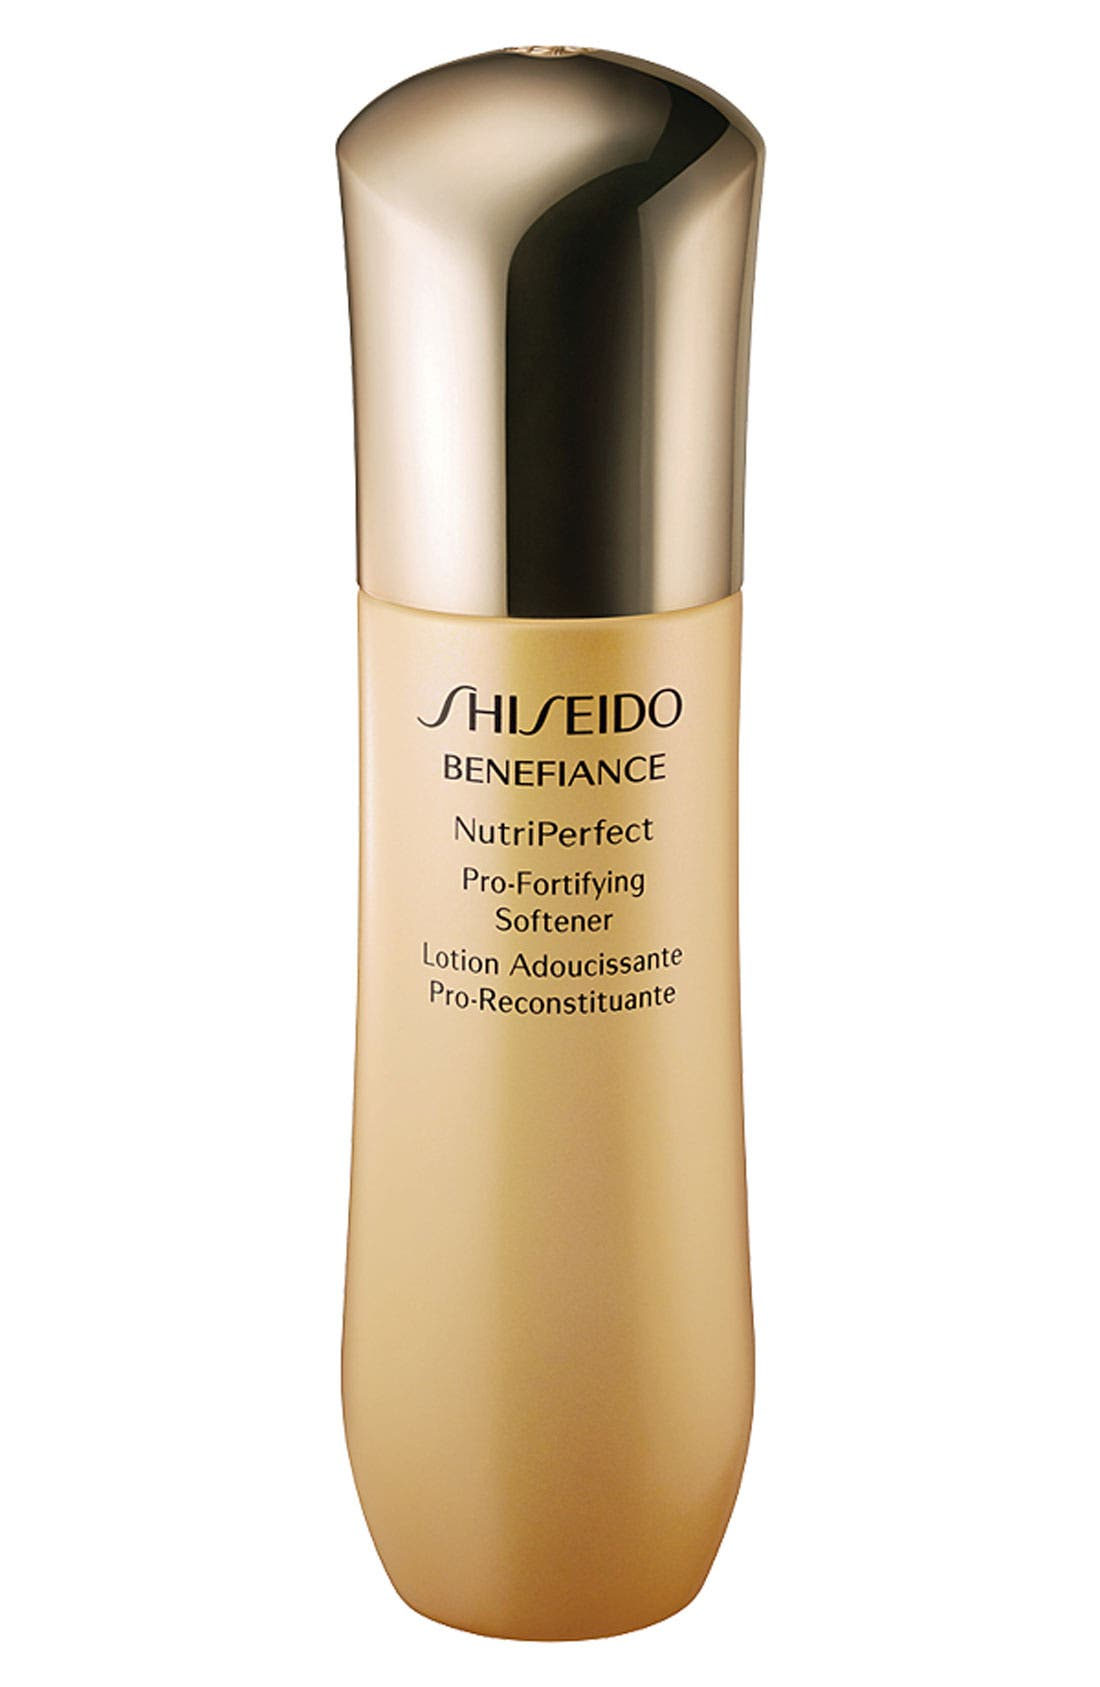 Shiseido 'Benefiance NutriPerfect' Pro-Fortifying Softener